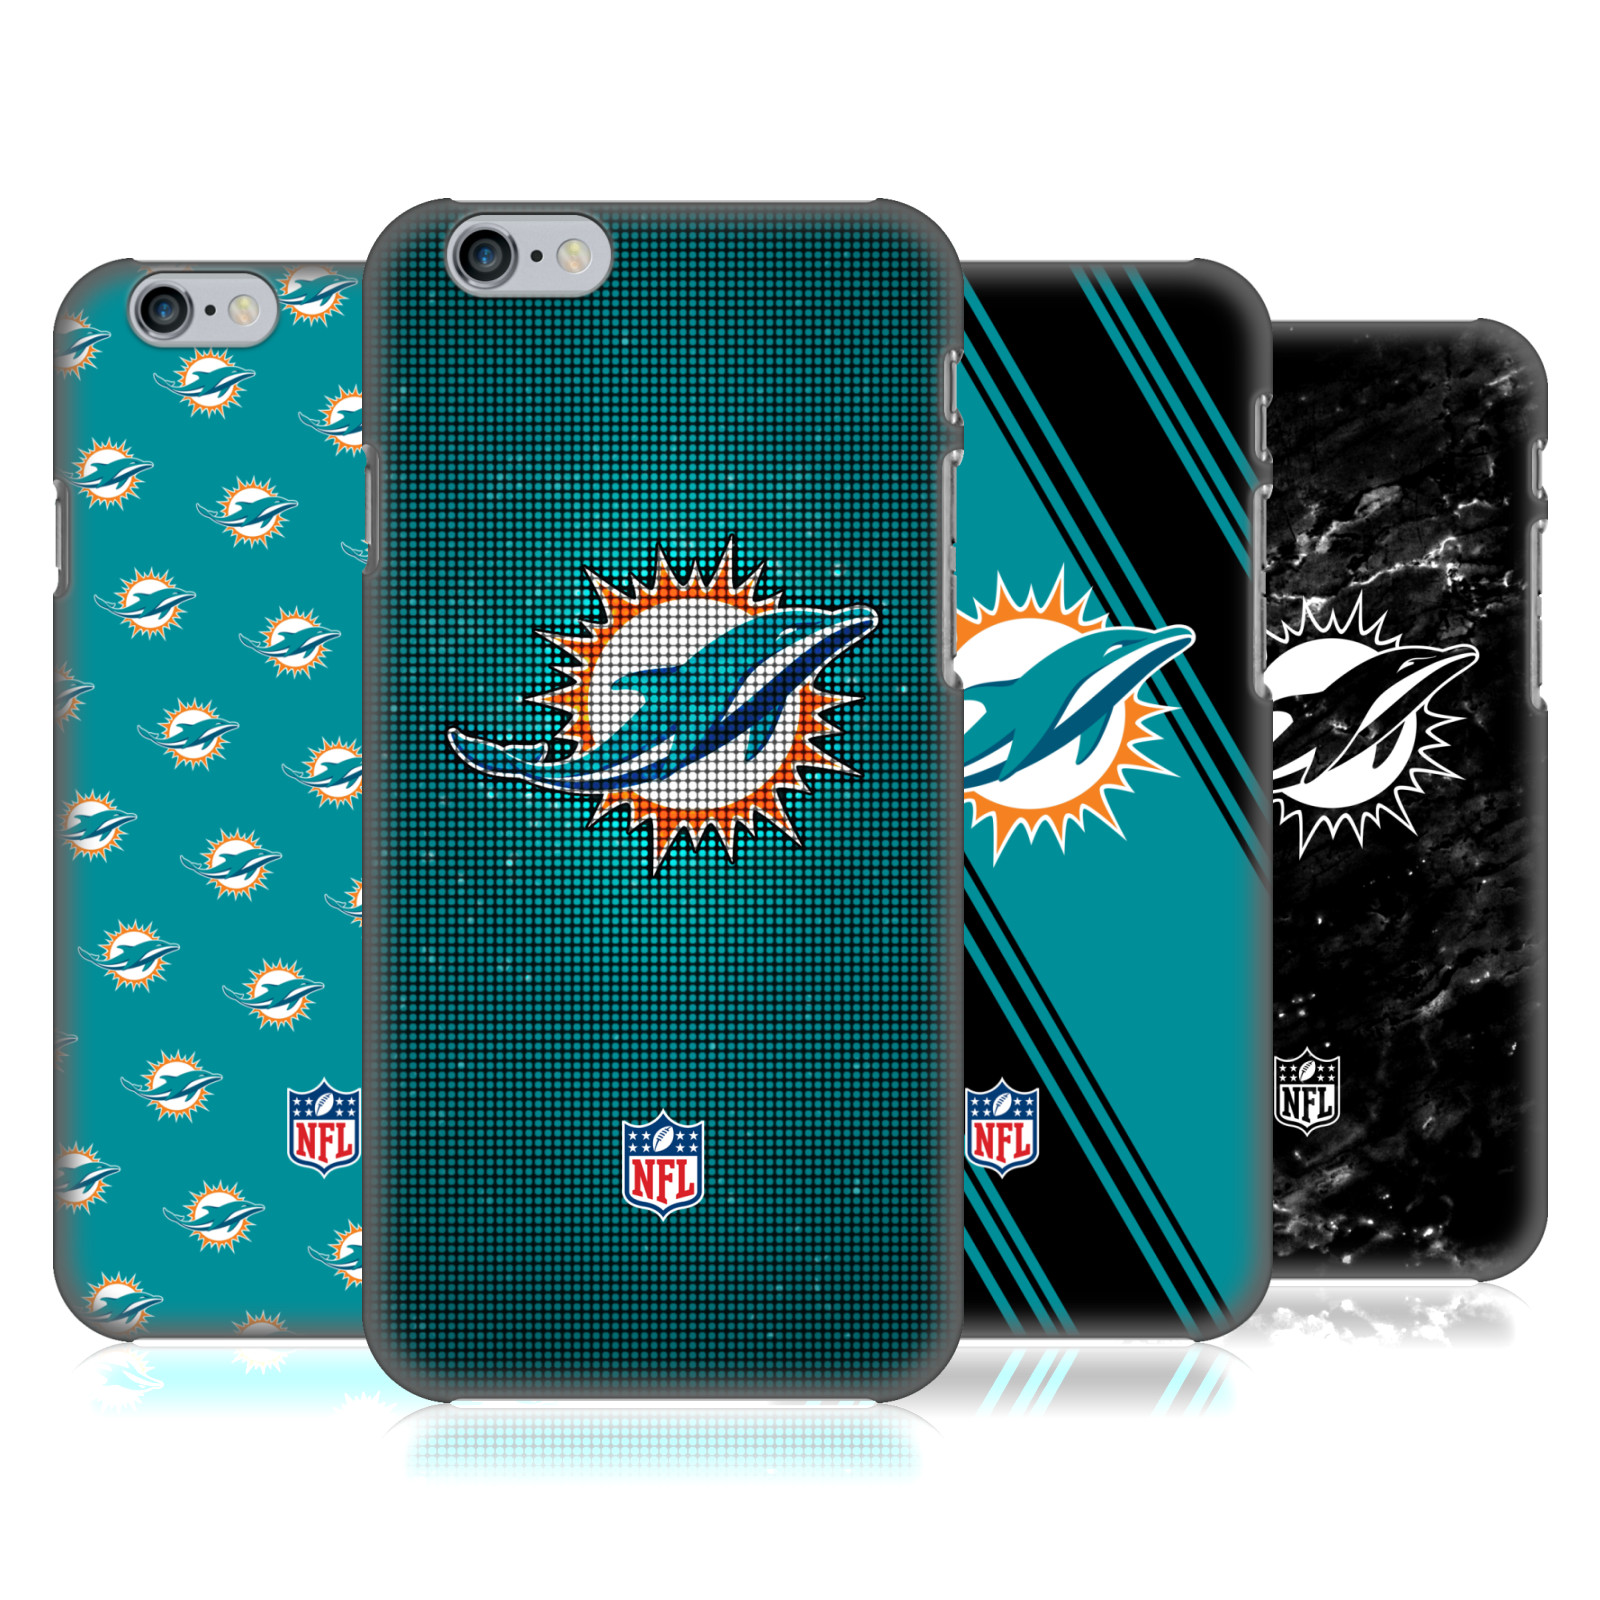 NFL 2017/18 Miami Dolphins